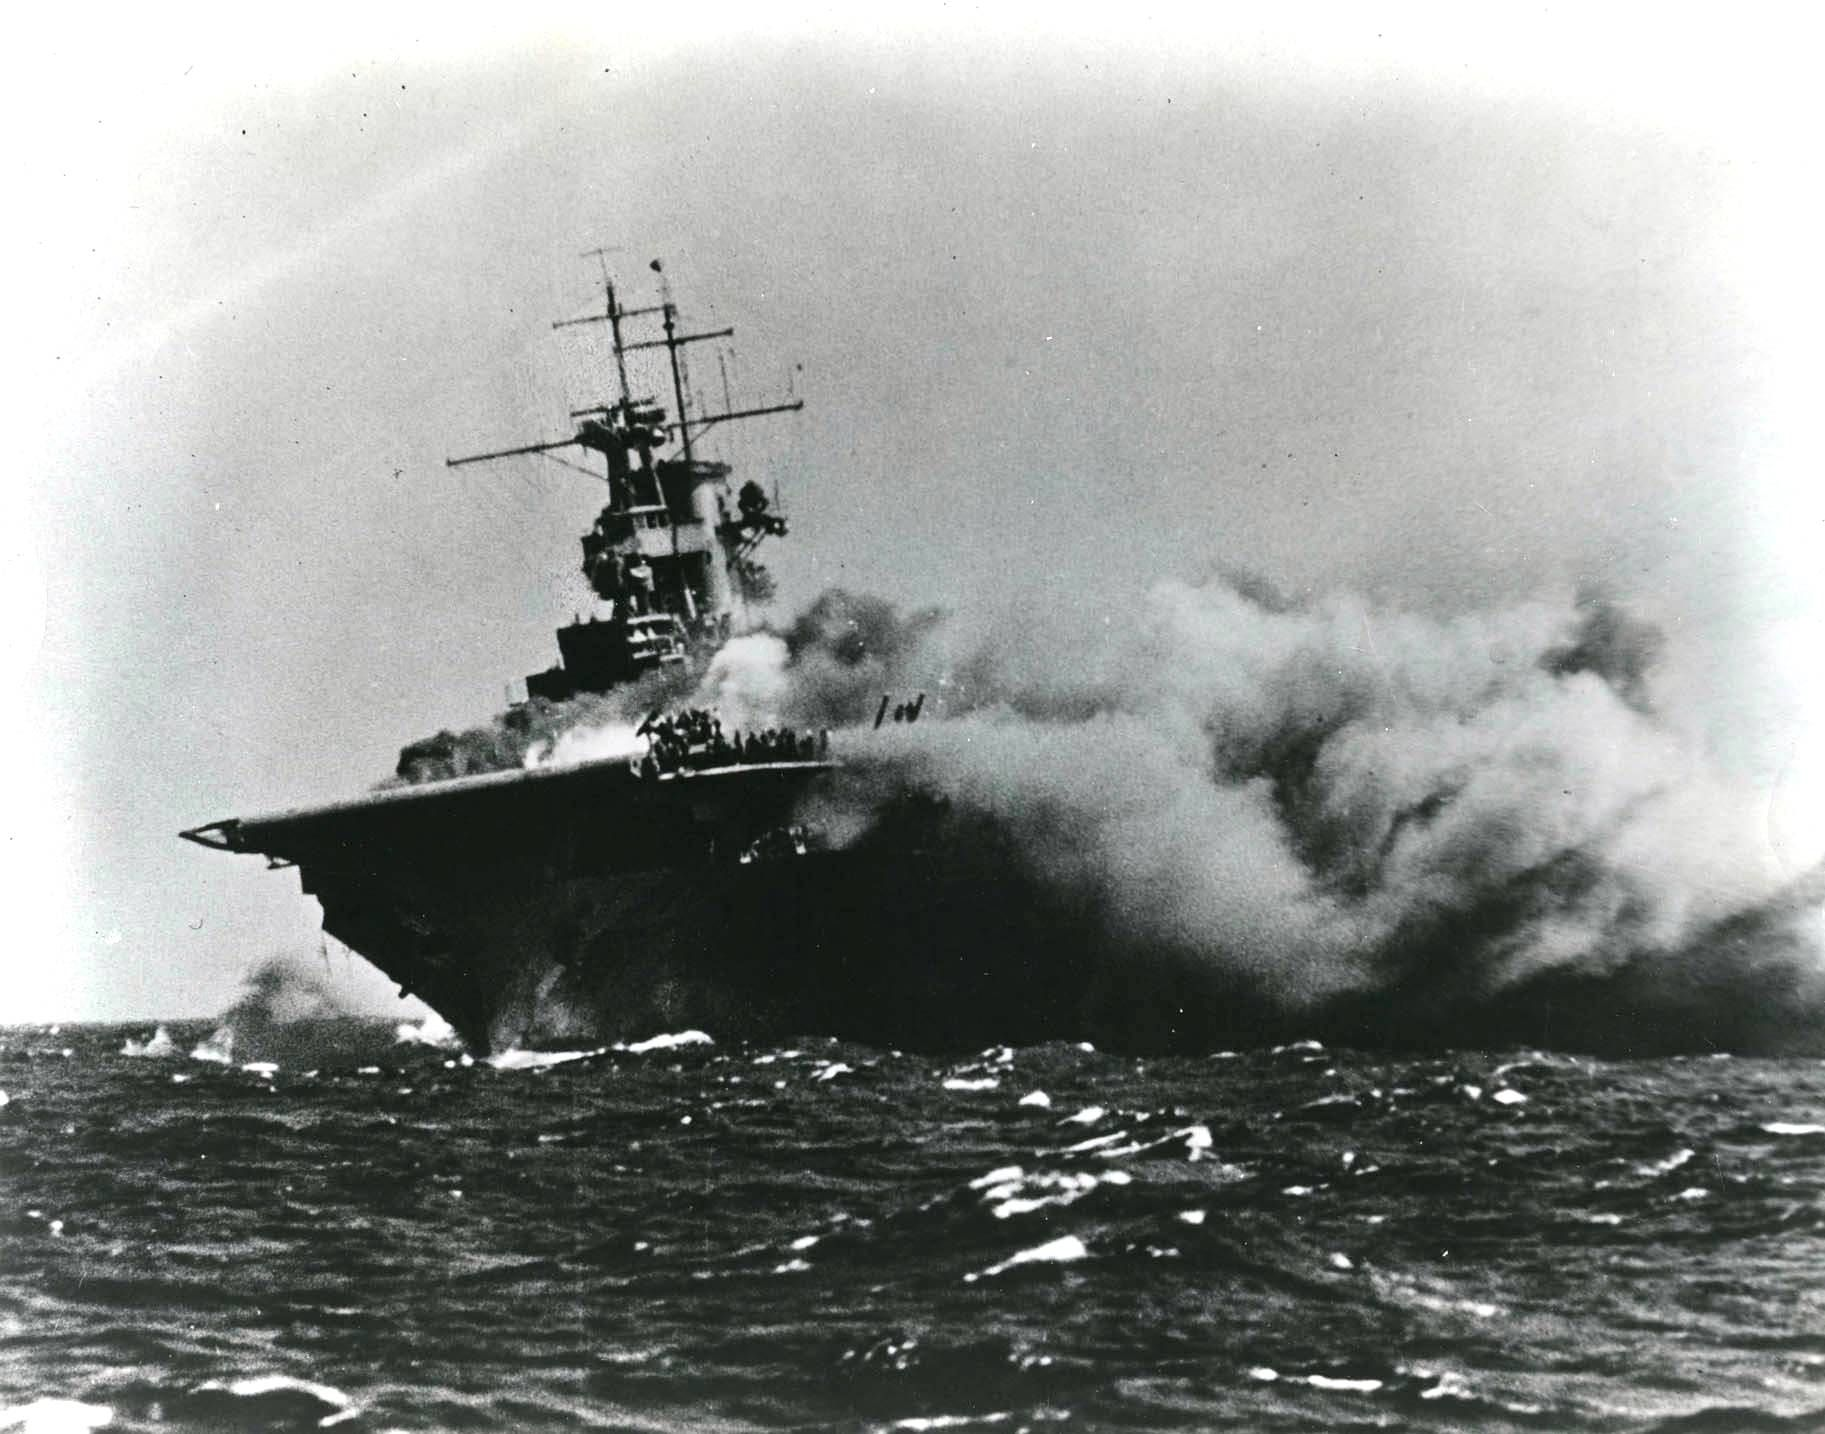 Carrier USS Wasp burning and listing after being torpedoed by Japanese submarine I-19 in the South Pacific, 15 Sep 1942. (US National Archives)